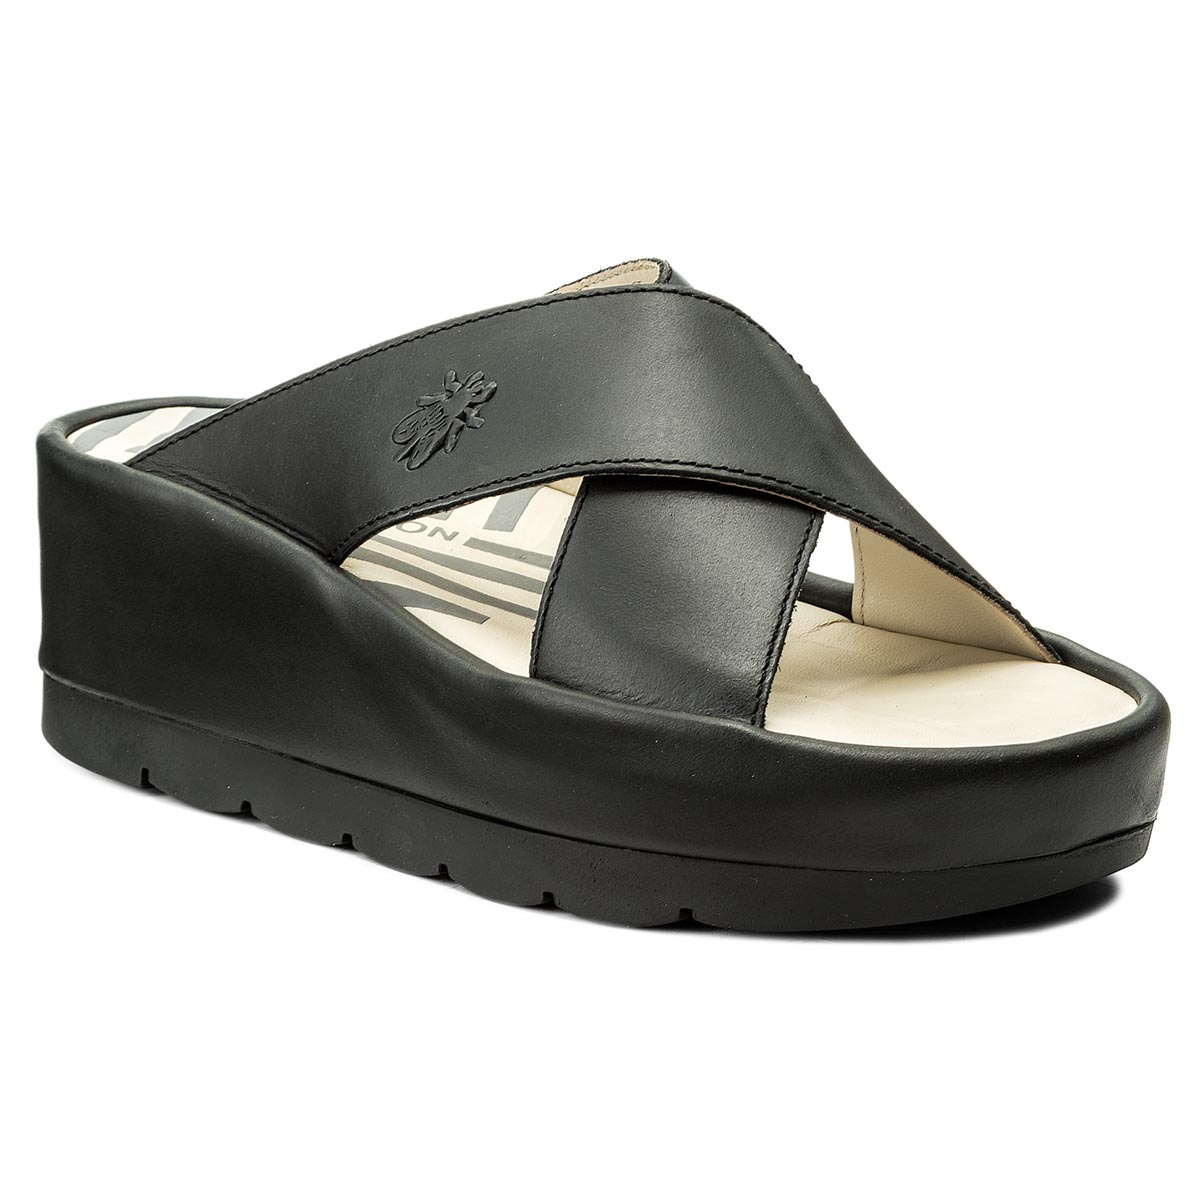 Klapki FLY LONDON - Begsfly P500793000 Black